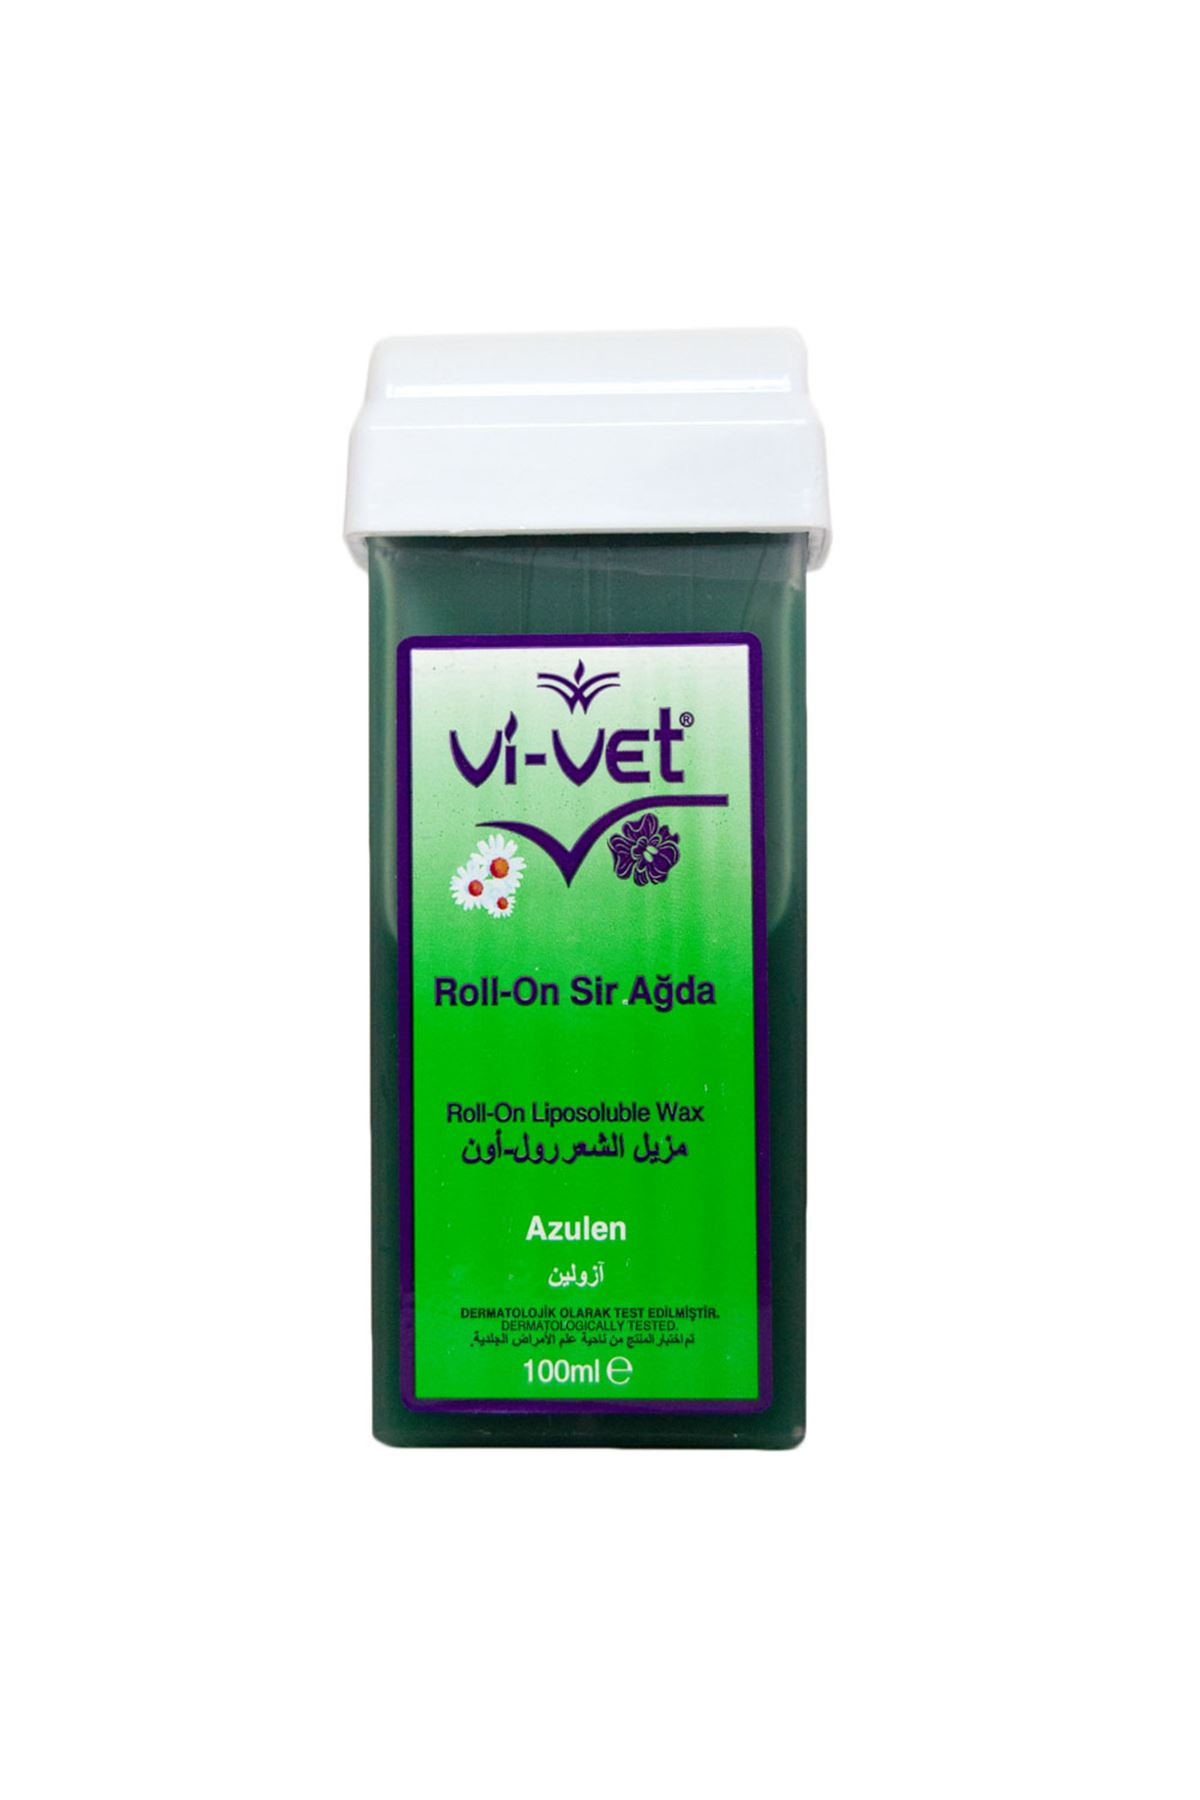 Vi-Vet Sir 100 ML Kartuş Roll-On Azulen